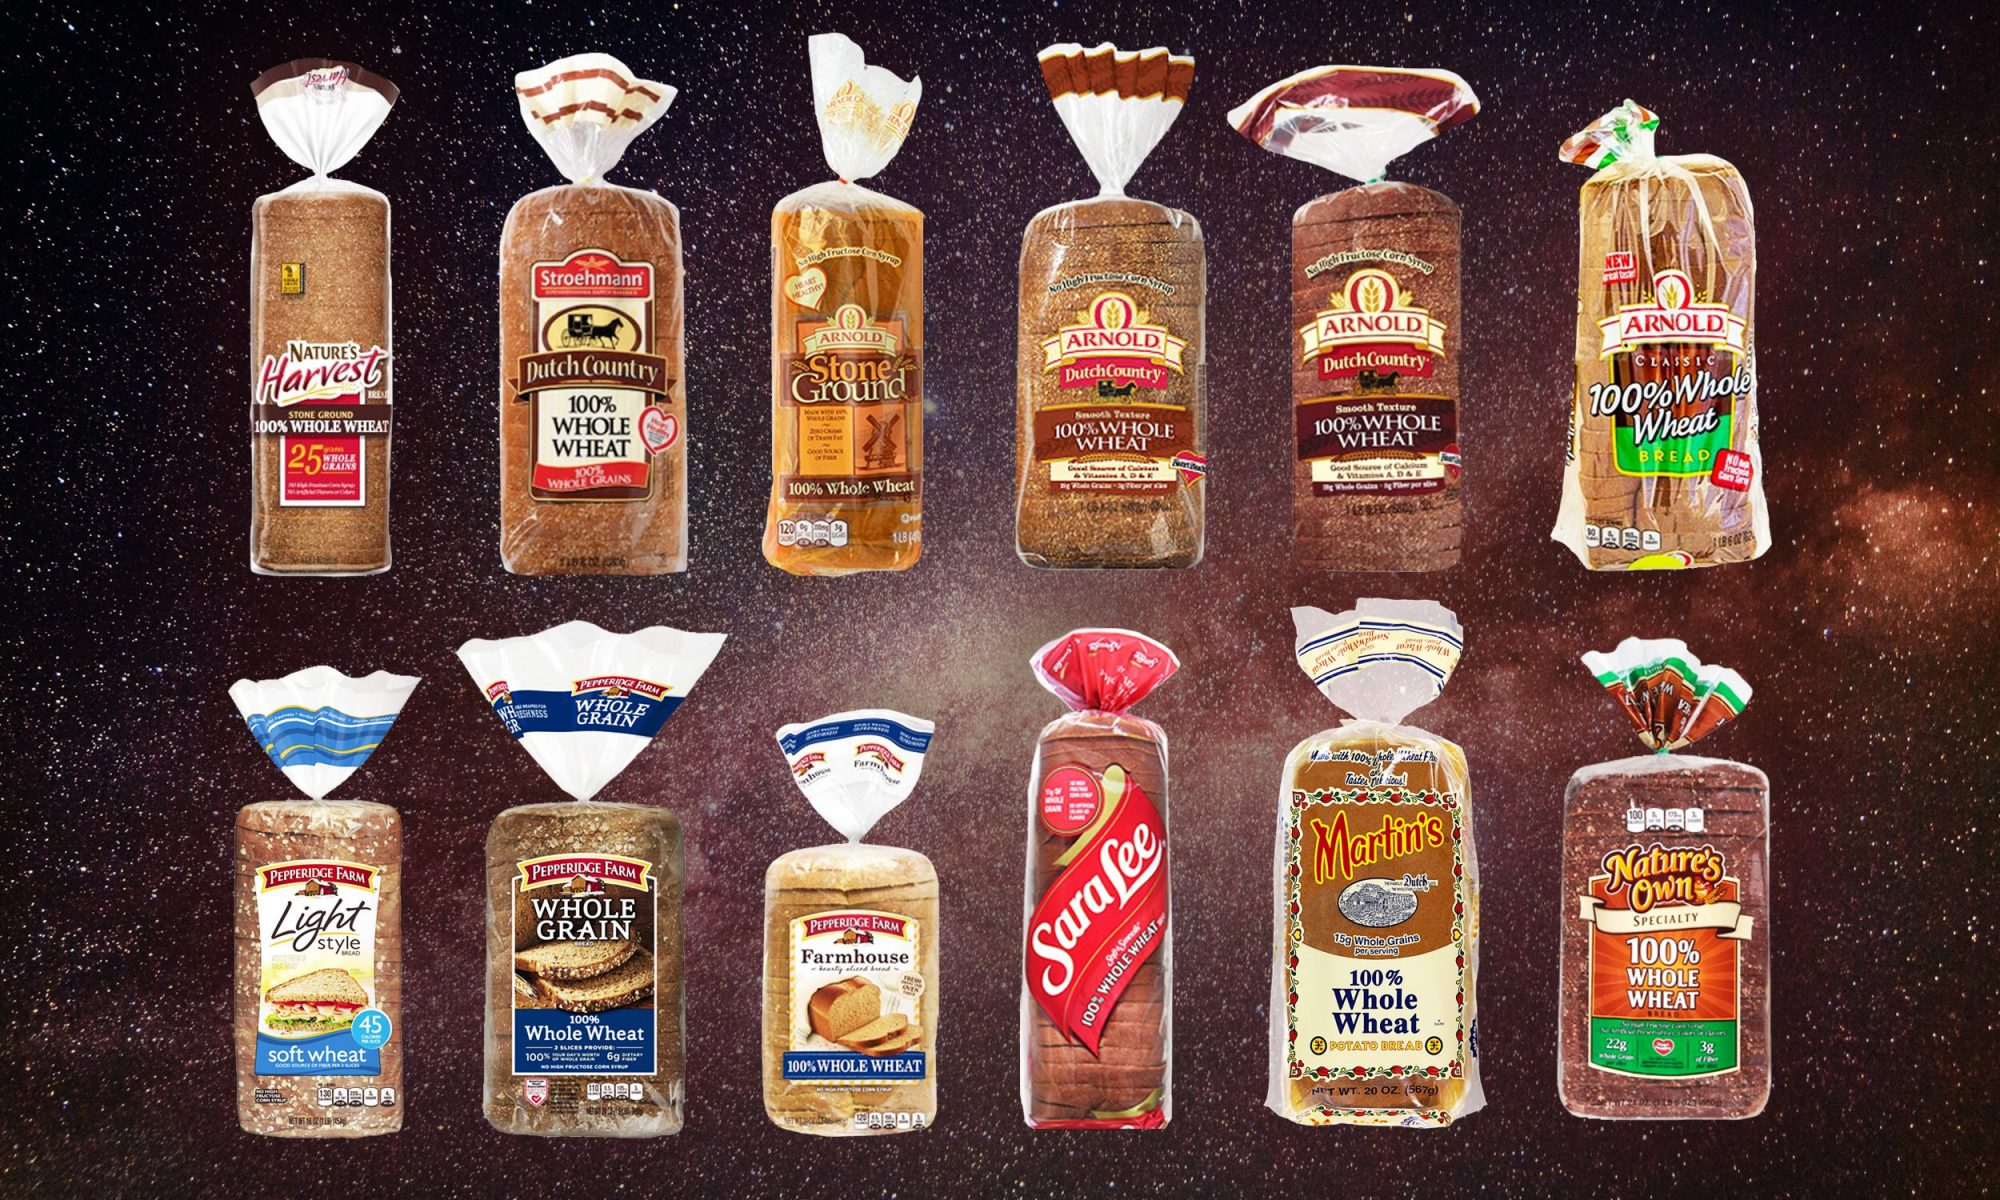 EC: I Tried 12 Kinds of Grocery Store Whole Wheat Bread and Here's the Best One